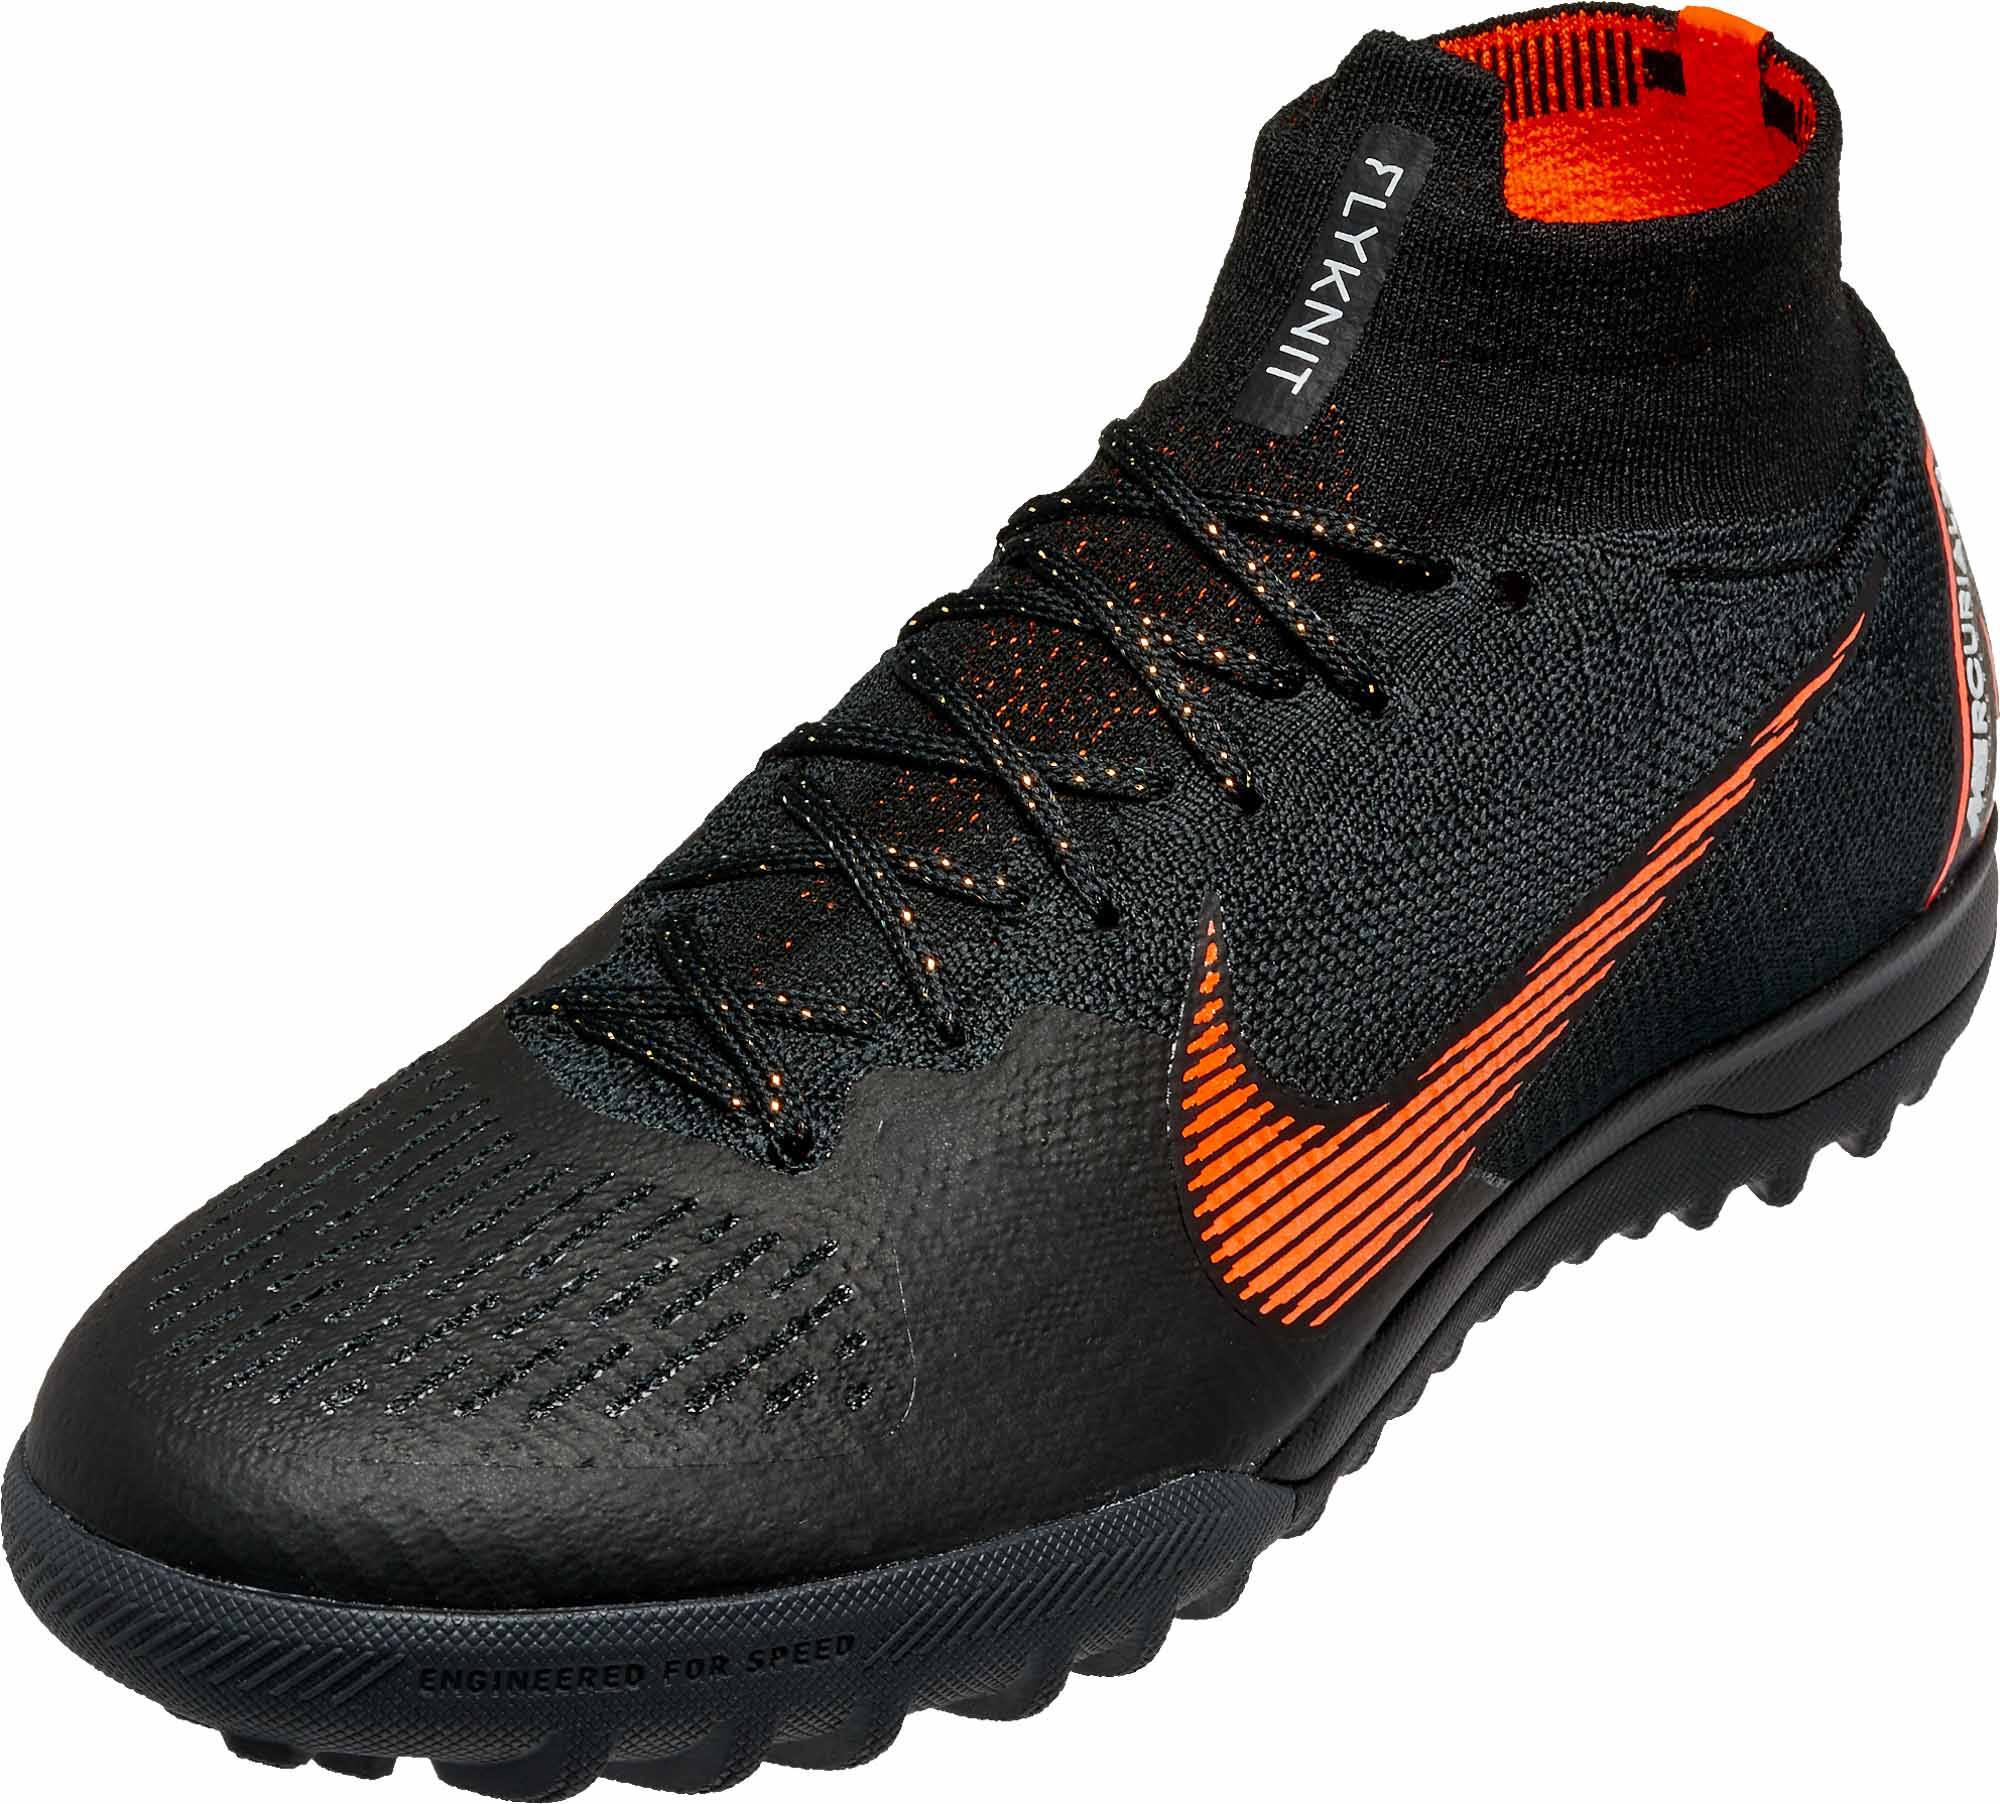 Nike Superflyx 6 Elite Tf  Black & Total Orange. Precautions Signs. Abcd Signs Of Stroke. Before Stroke Signs Of Stroke. Gene Signs. Ks1 Signs. Metabolism Signs Of Stroke. Leo Star Signs Of Stroke. Haunted House Signs